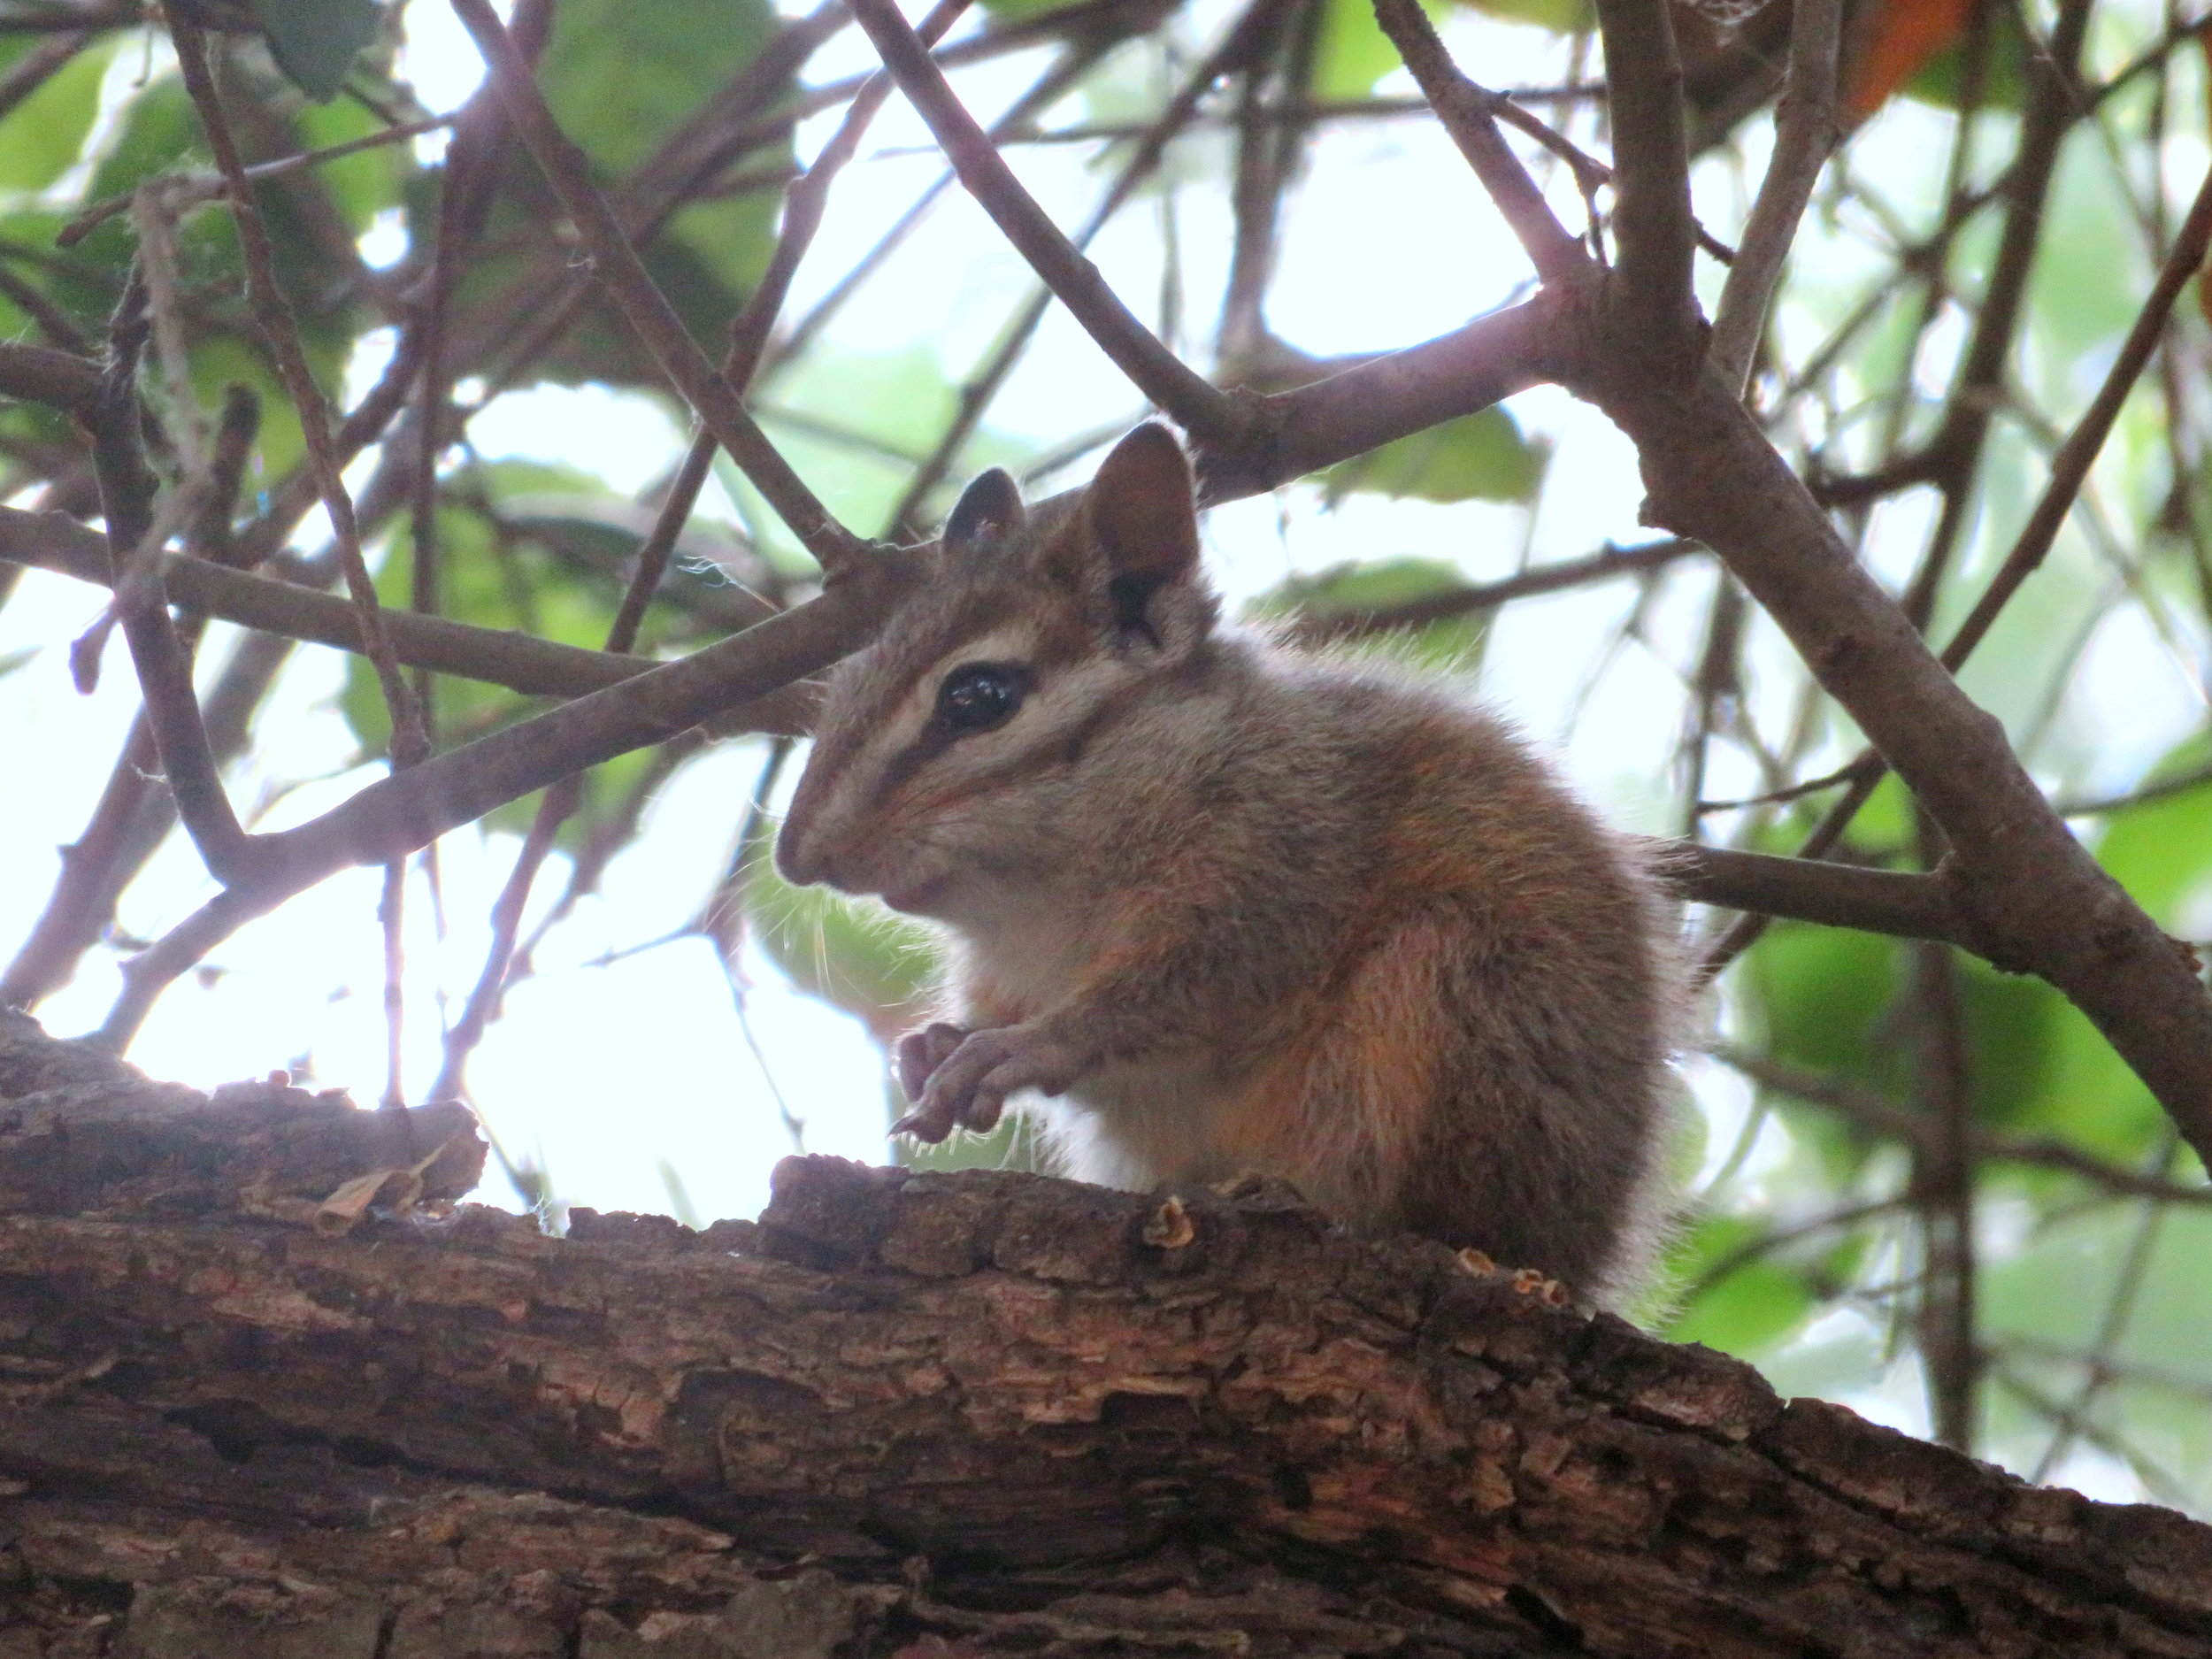 A little chipmunk gave us the once over, but didn't stray too far from his branch.